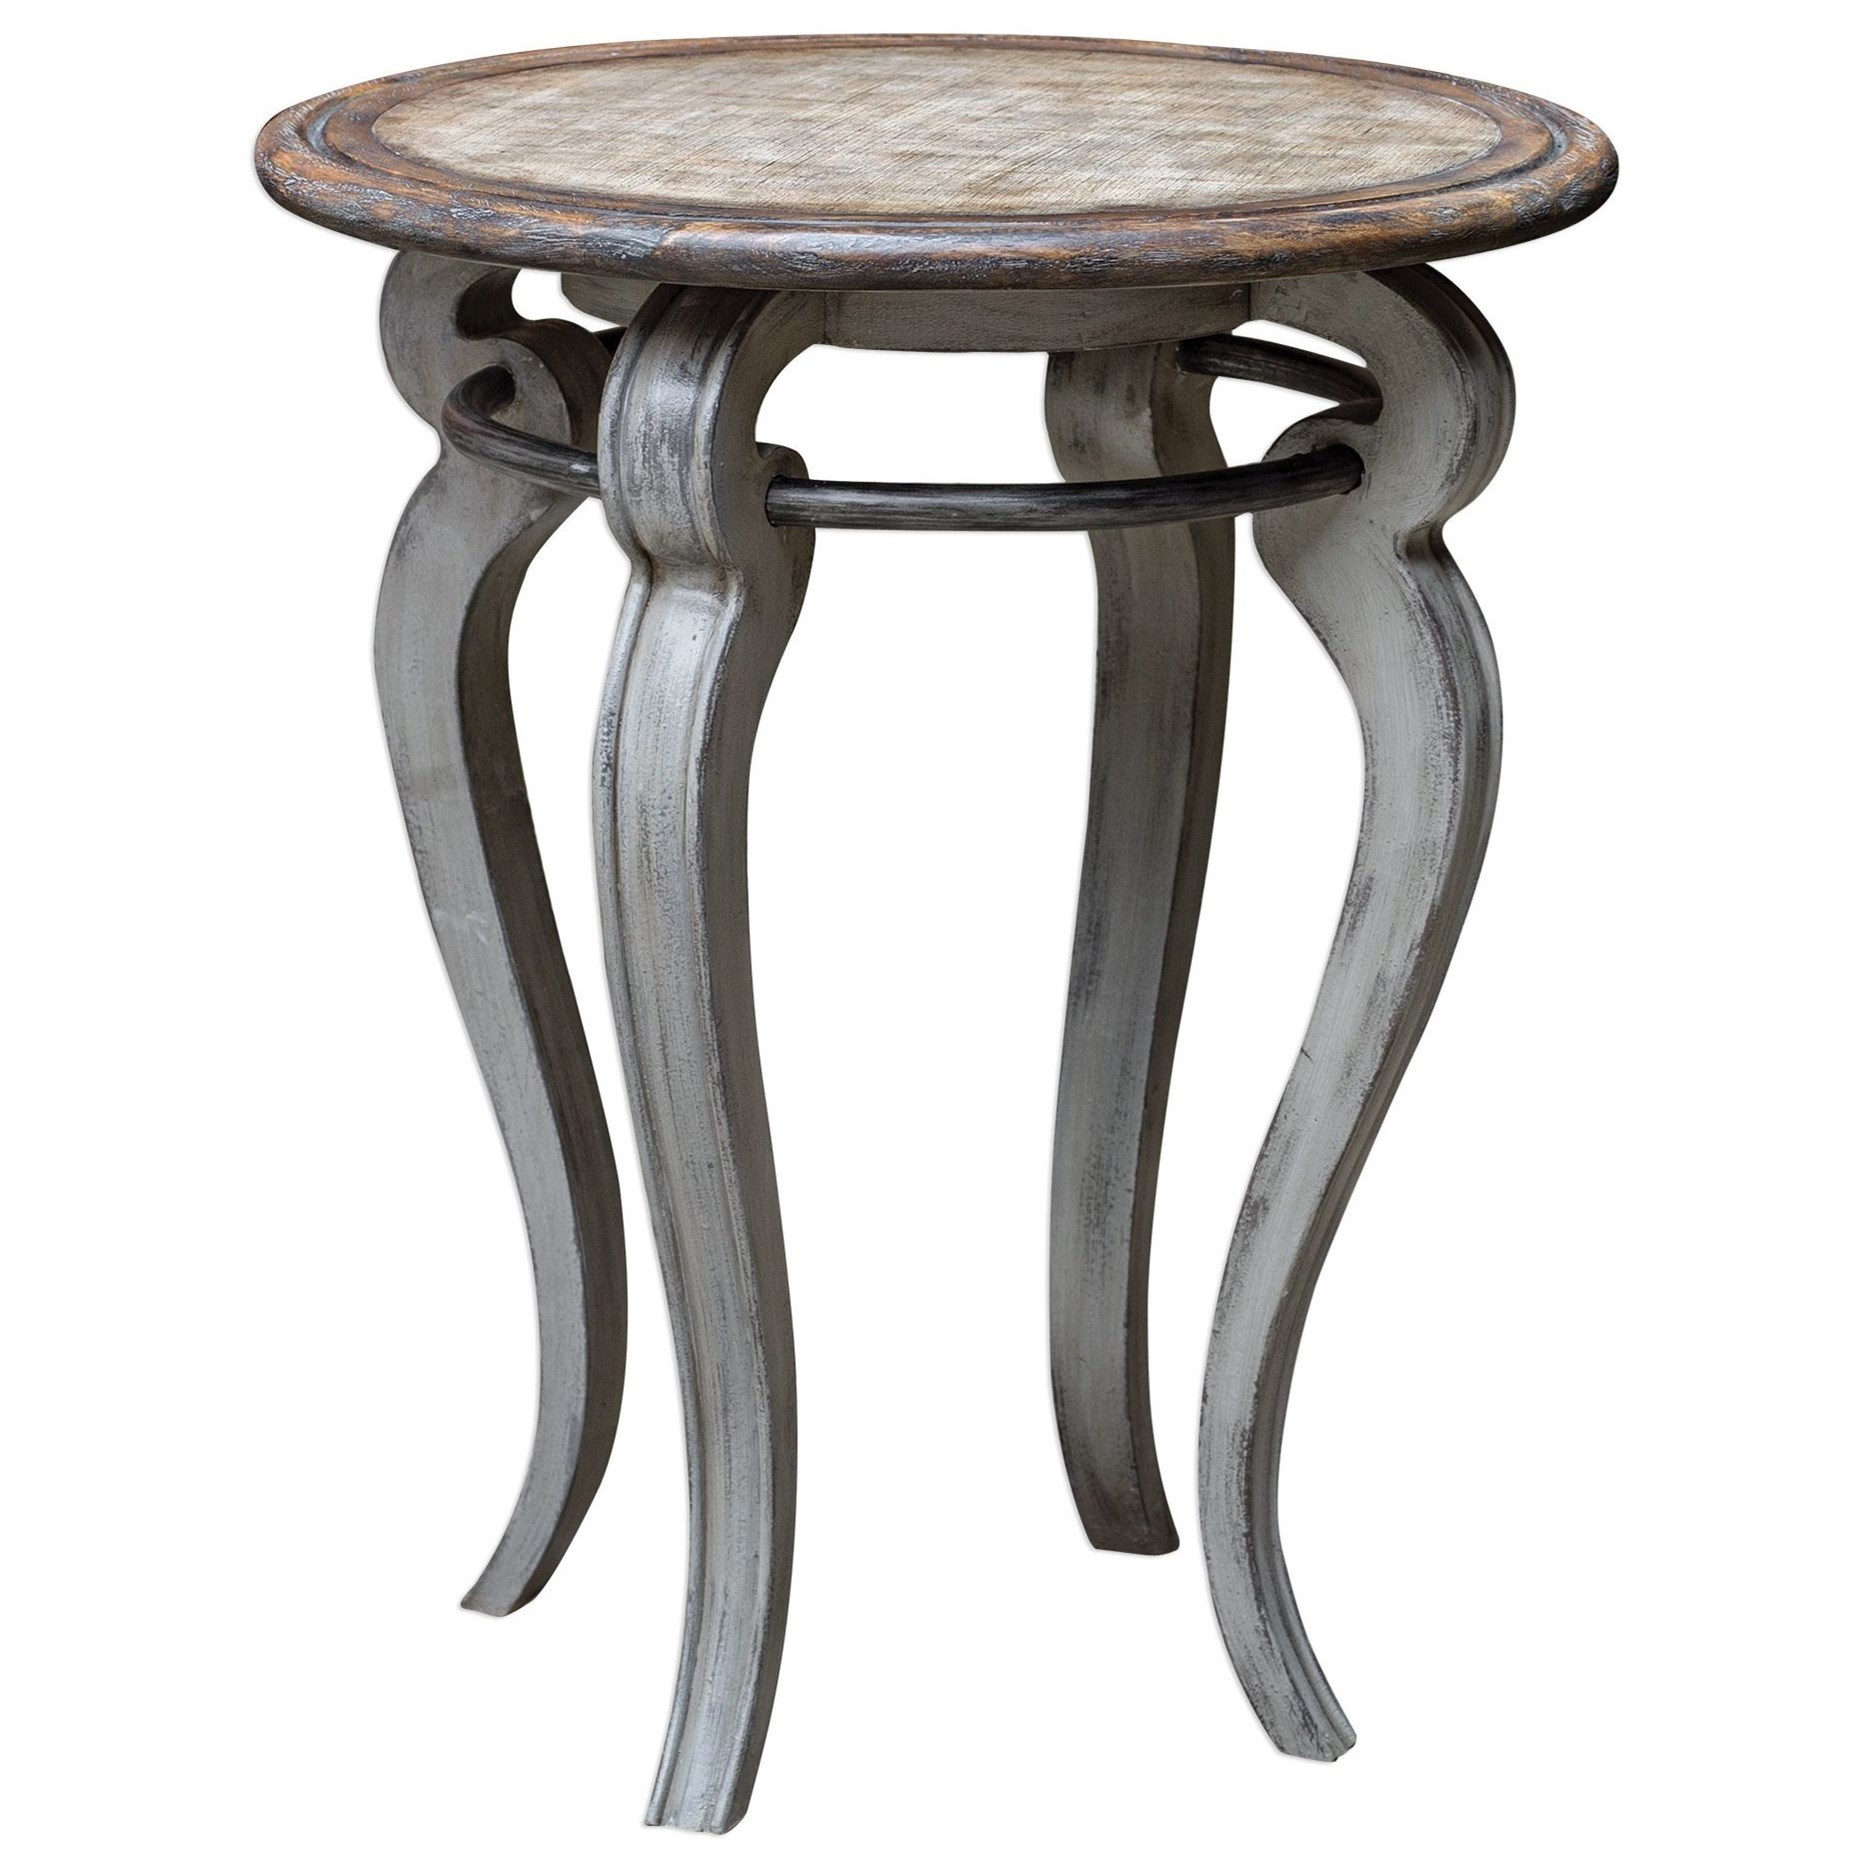 Accent Furniture - Occasional Tables Mariah Round Gray Accent Table by Uttermost at O'Dunk & O'Bright Furniture